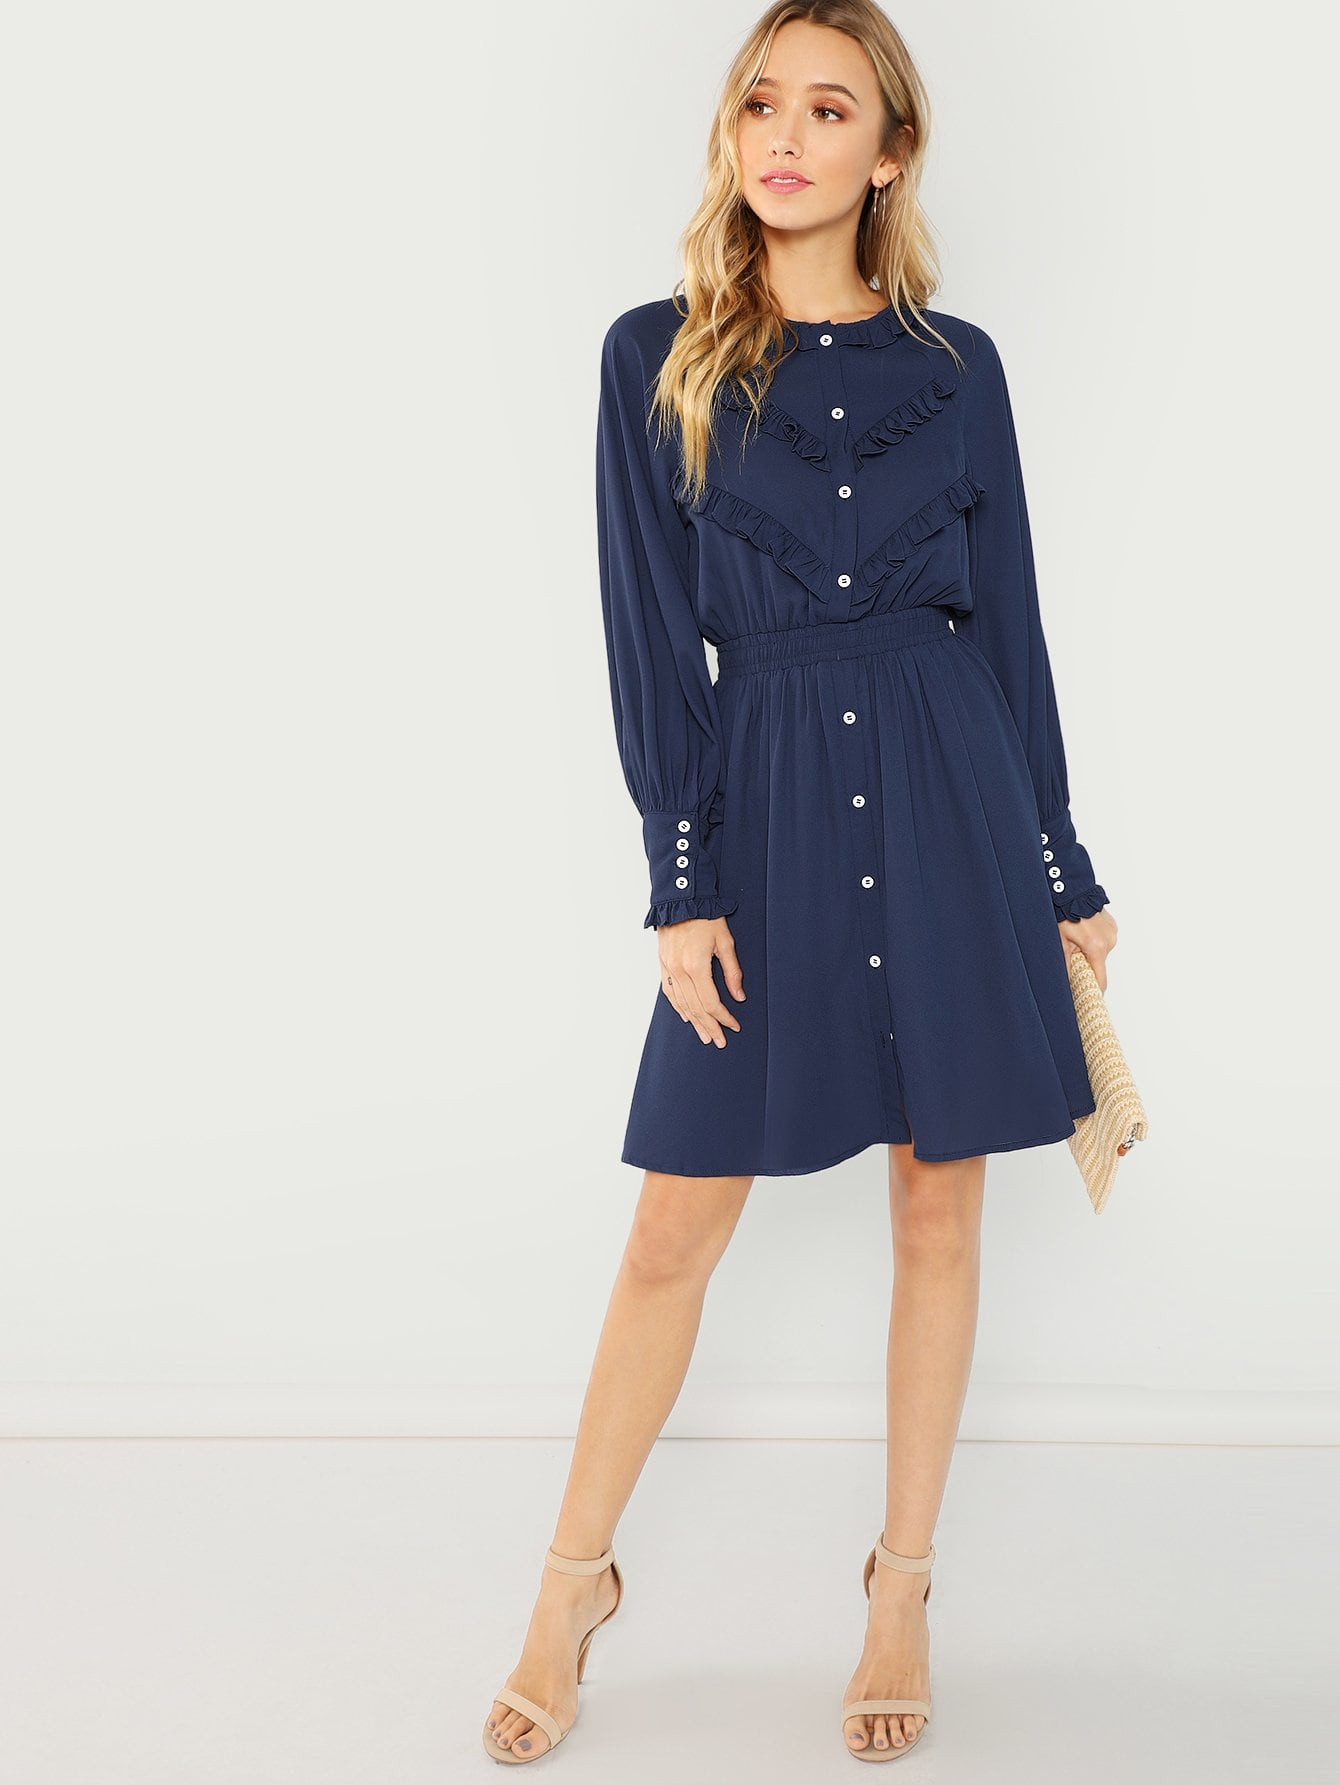 Button Front Solid Dress - hashtag